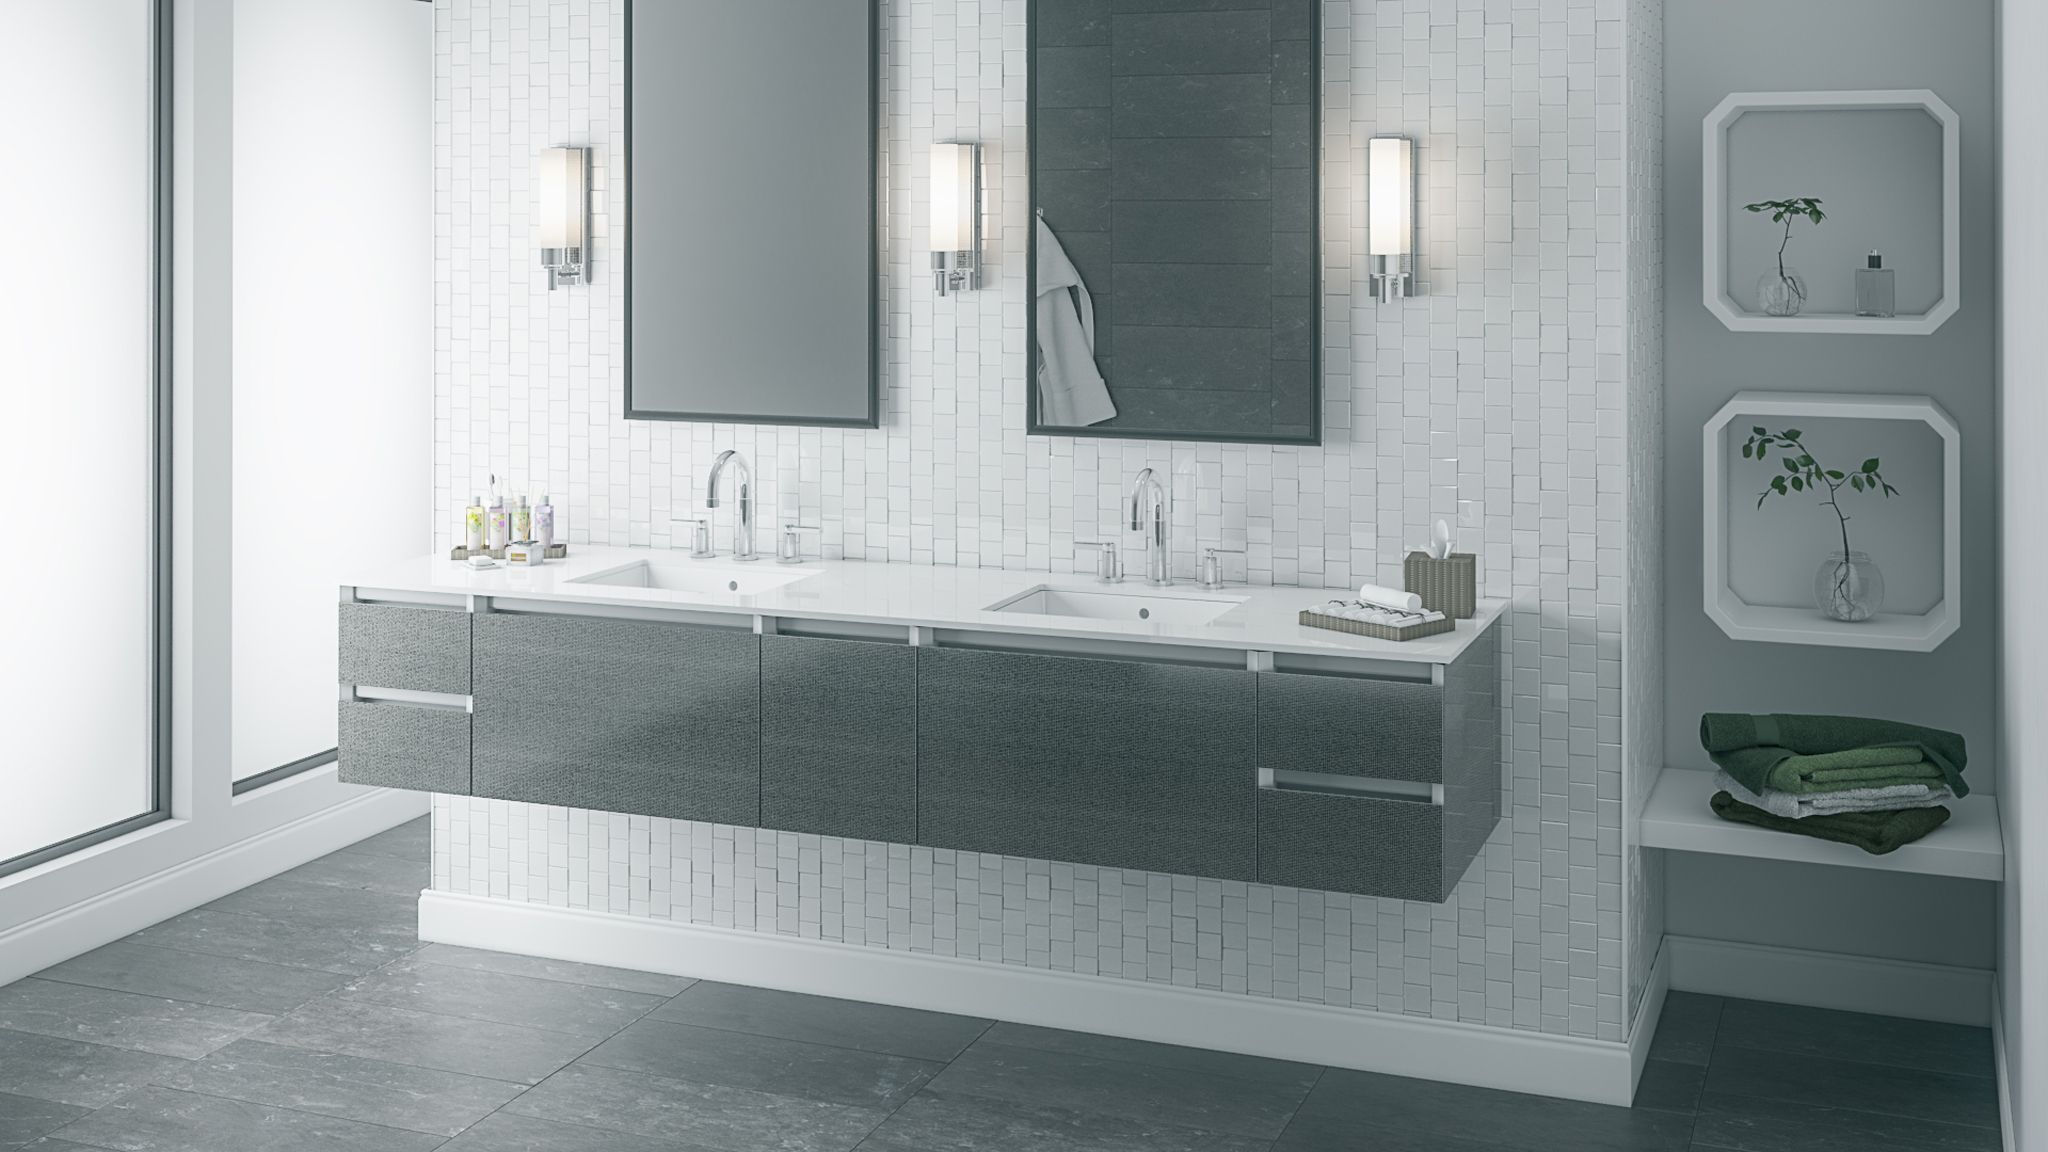 6 Great Aging in Place Features for Your Bathroom -- innovative ways to make your bathroom modern functional and accessible. : bathroom-innovation - designwebi.com